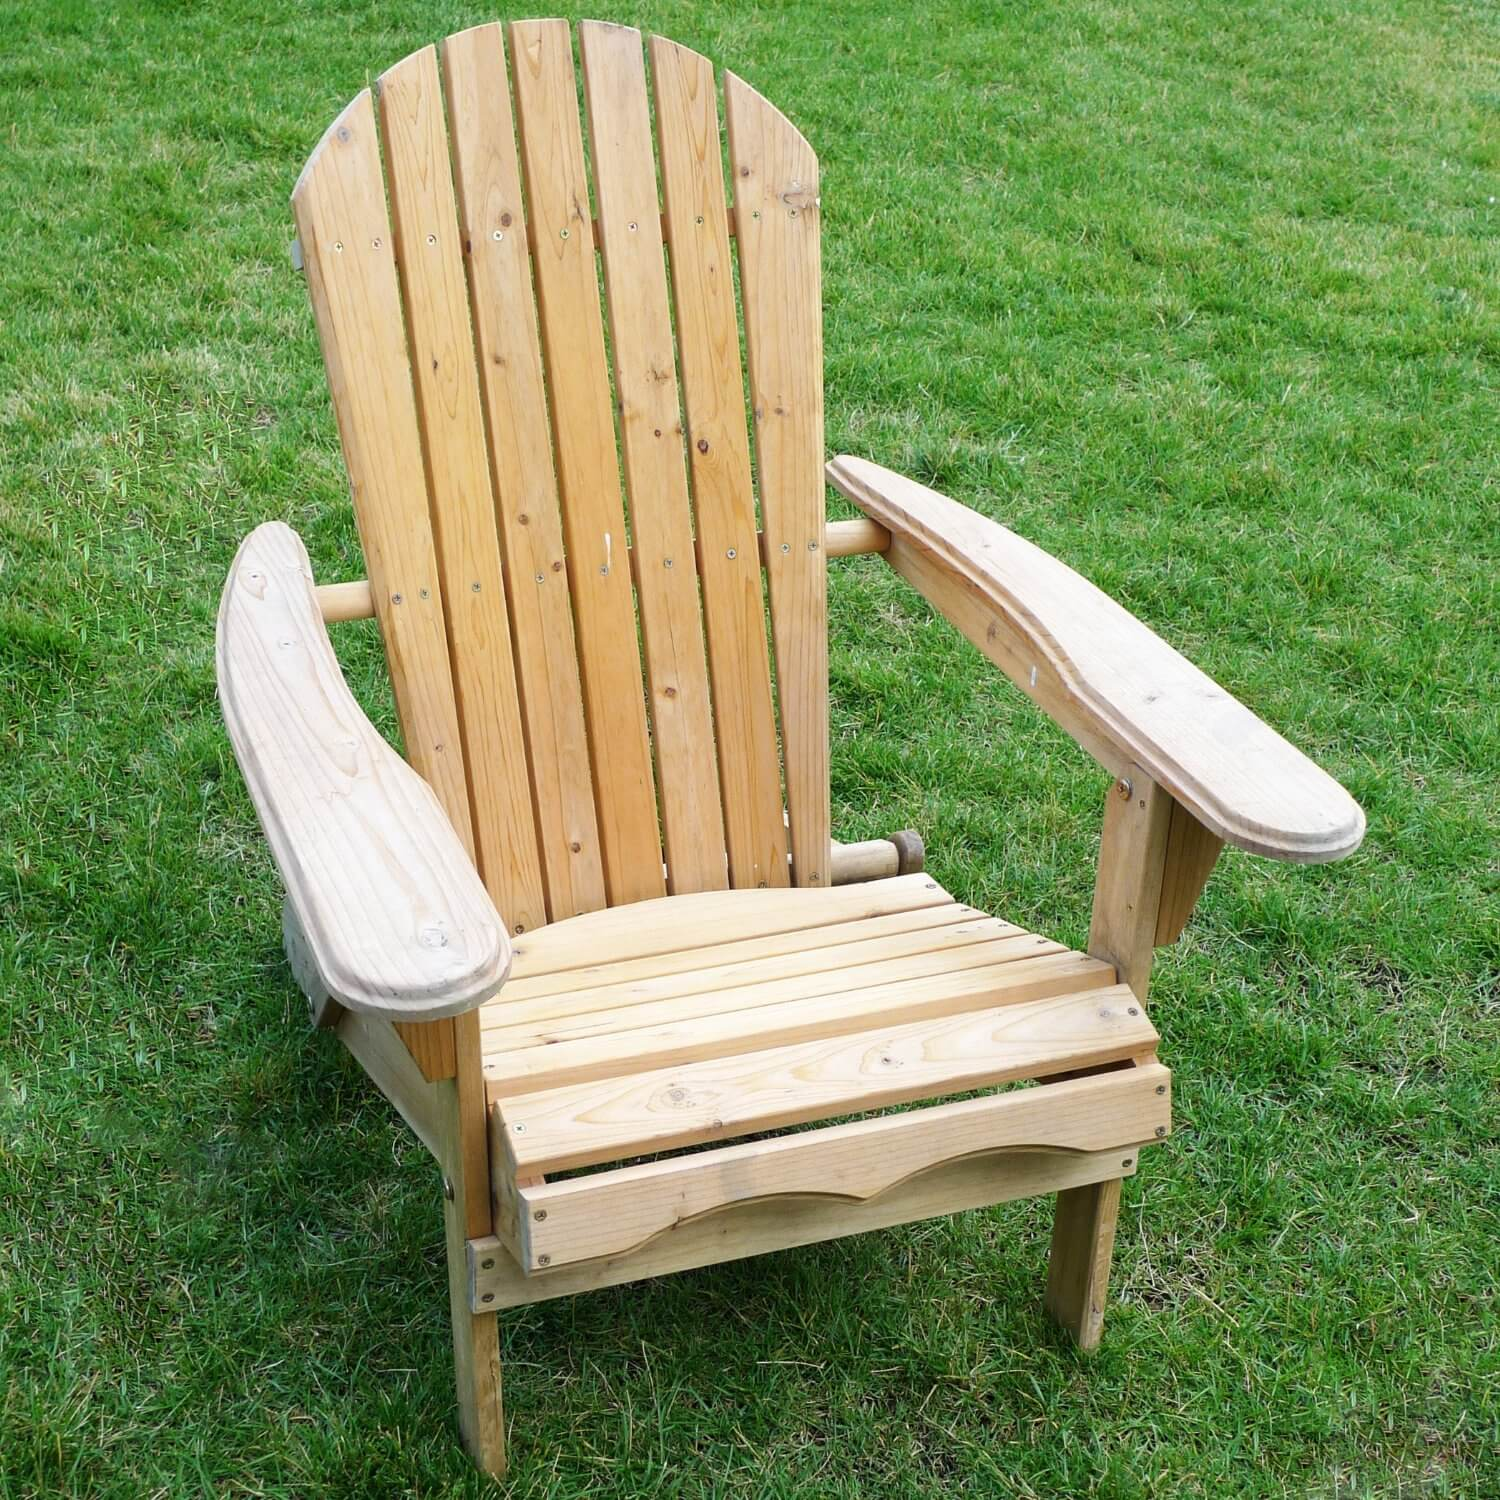 How to Build a Wooden Pallet Adirondack Chair Stepby